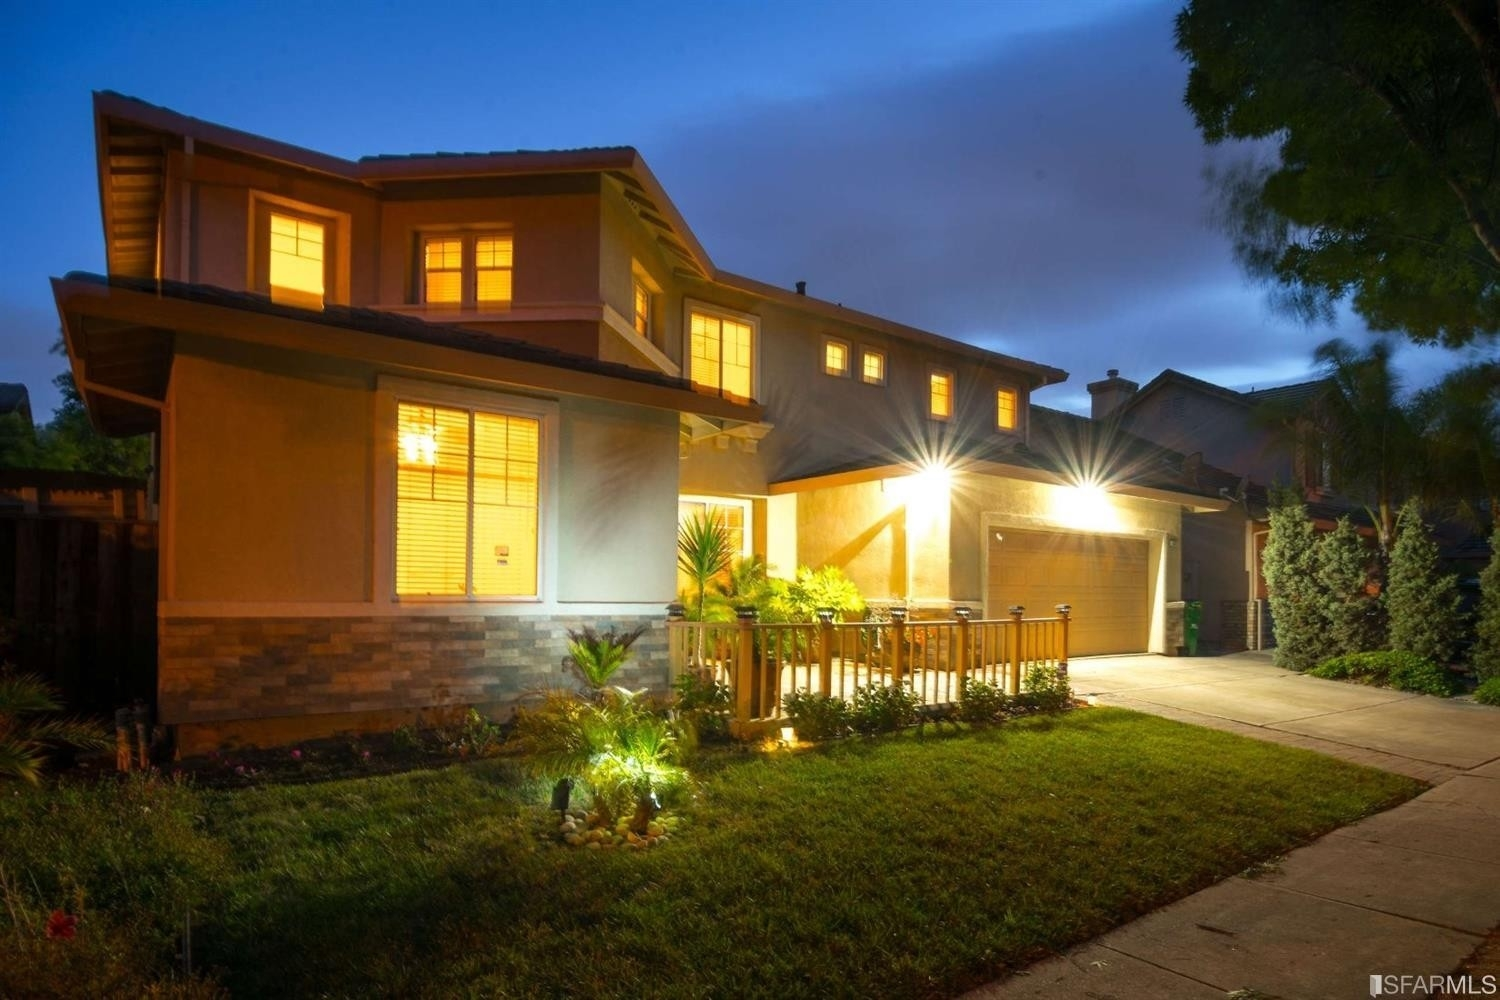 Single Family Home for Sale at Fairway Prk, Hayward, CA 94544